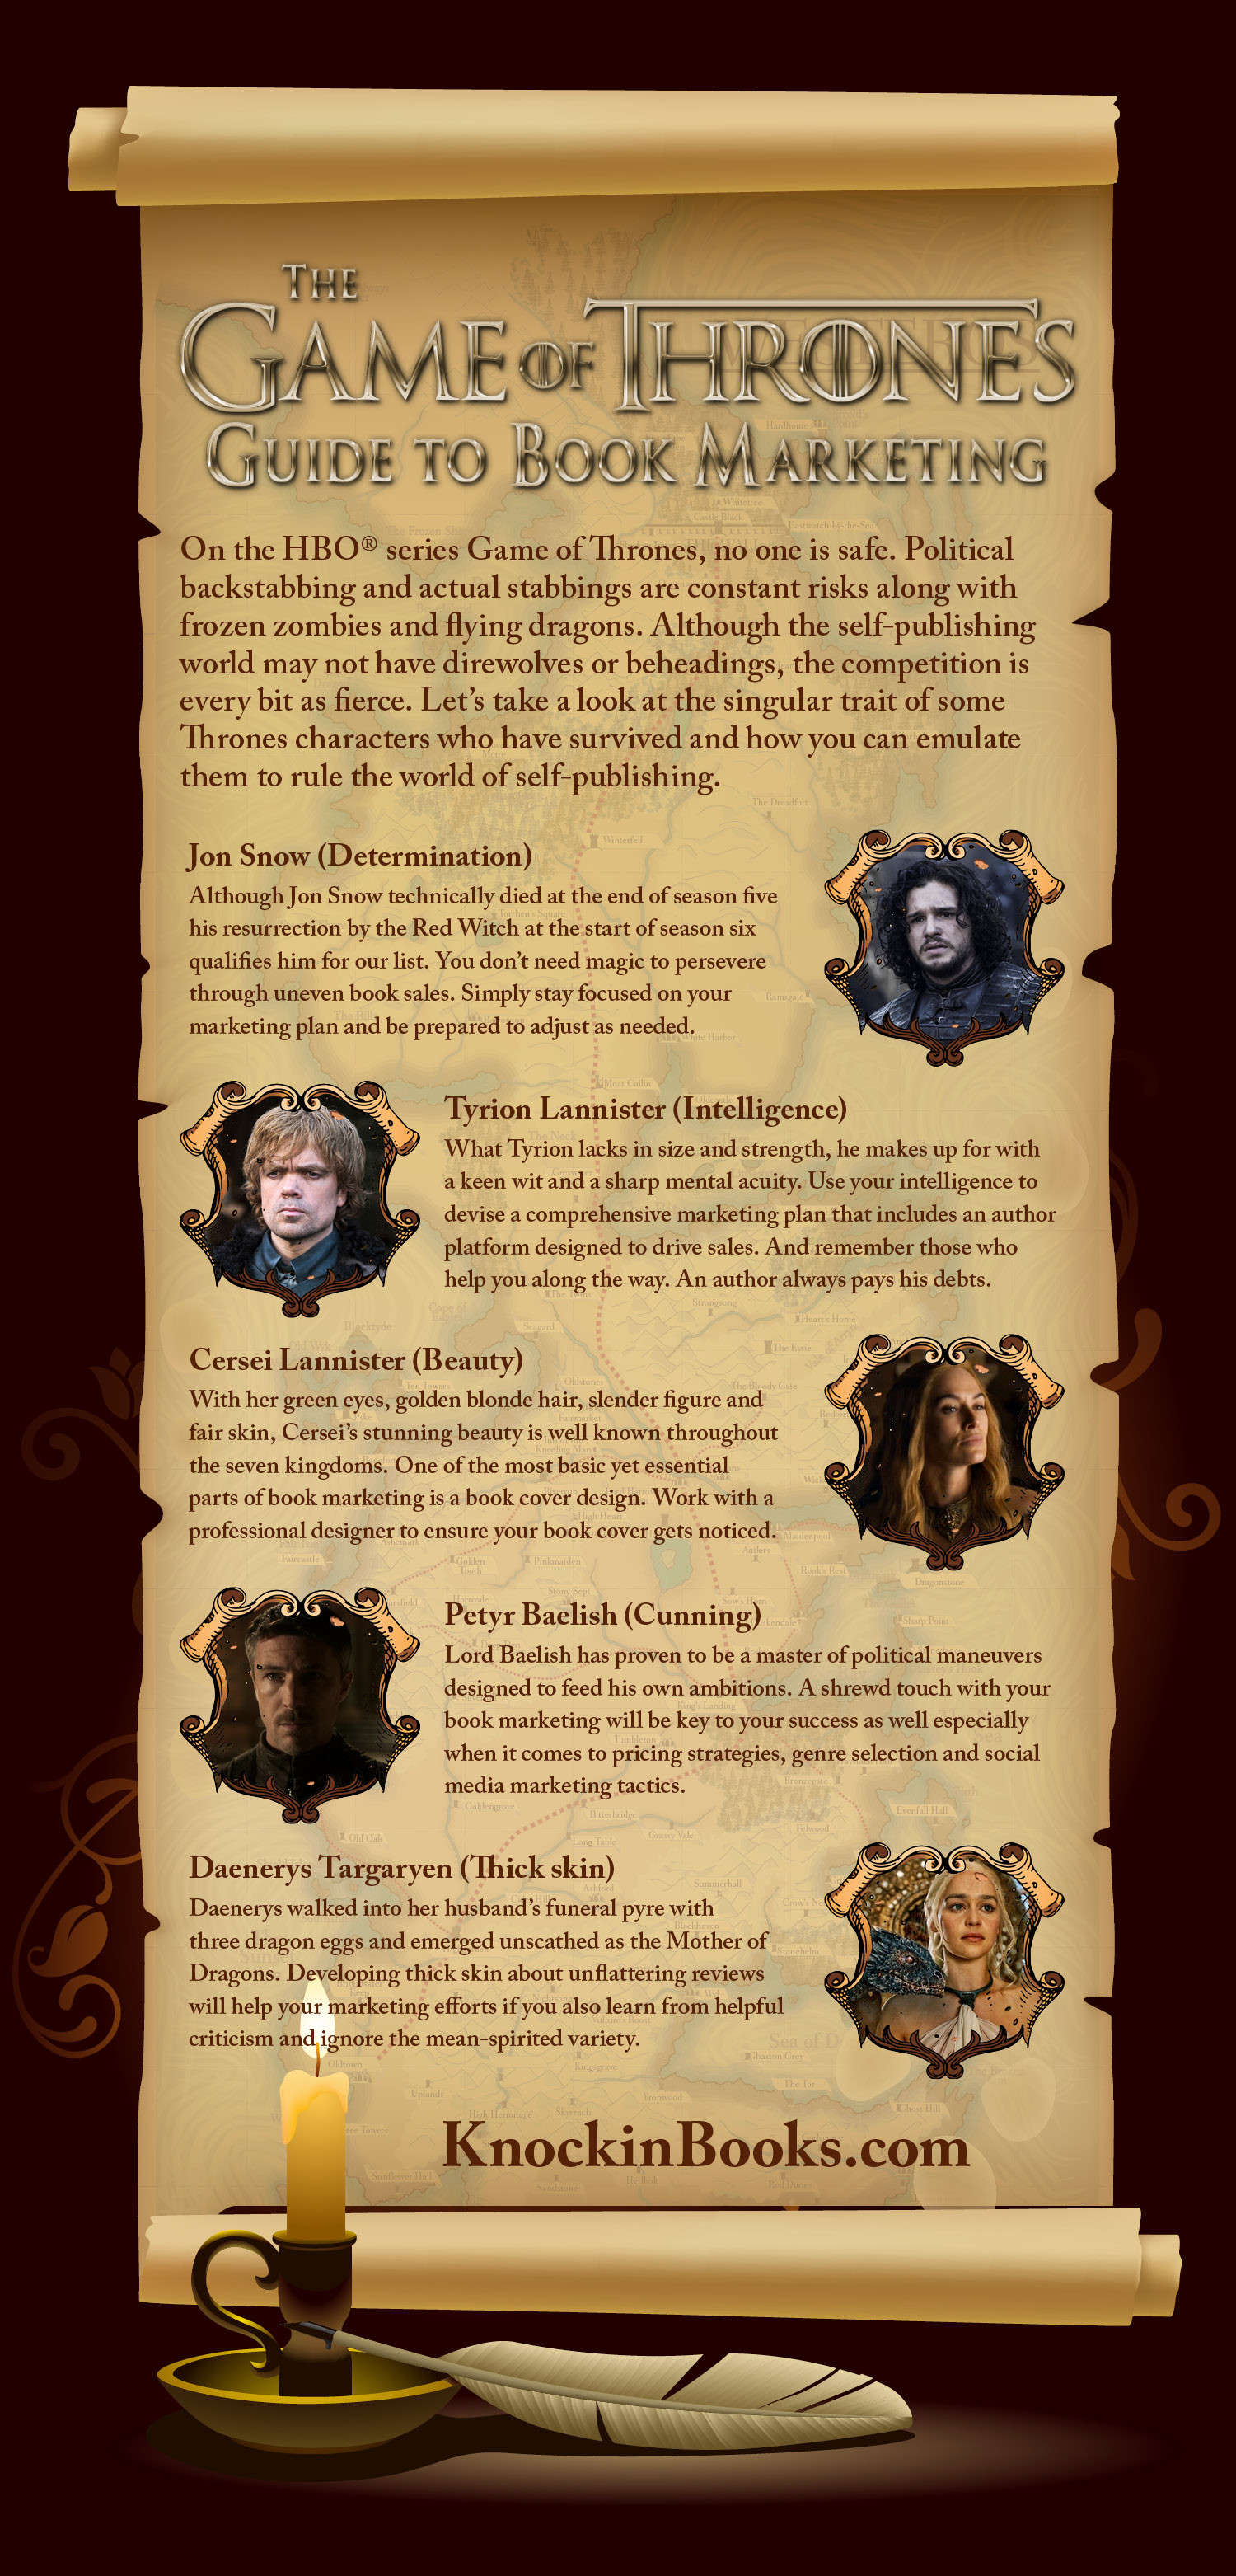 The Game of Thrones Guide to Book Marketing Infographic